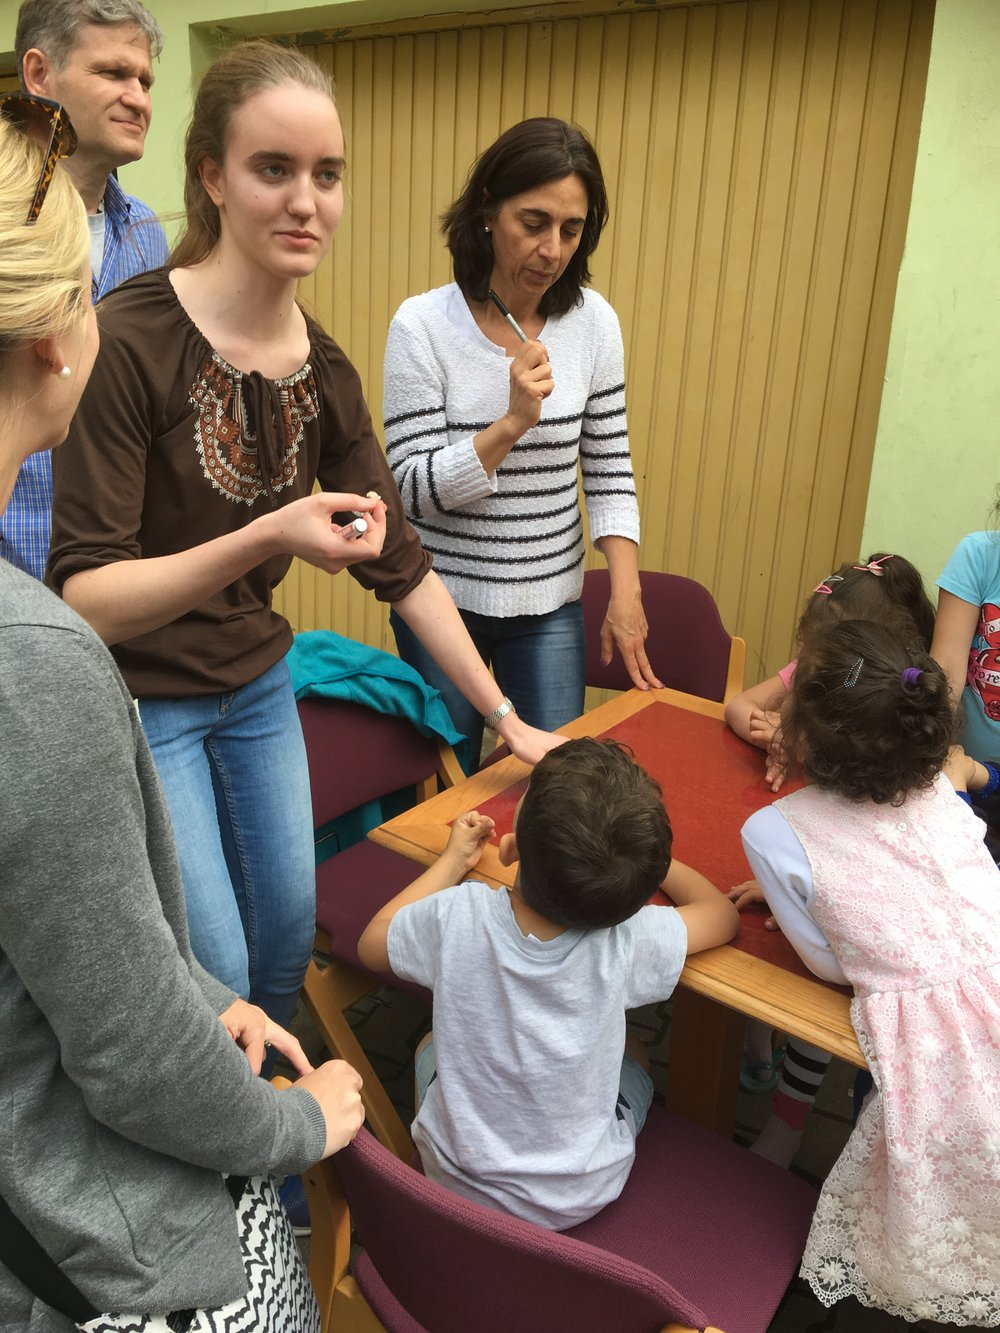 Visiting a refugee center that church members are working in